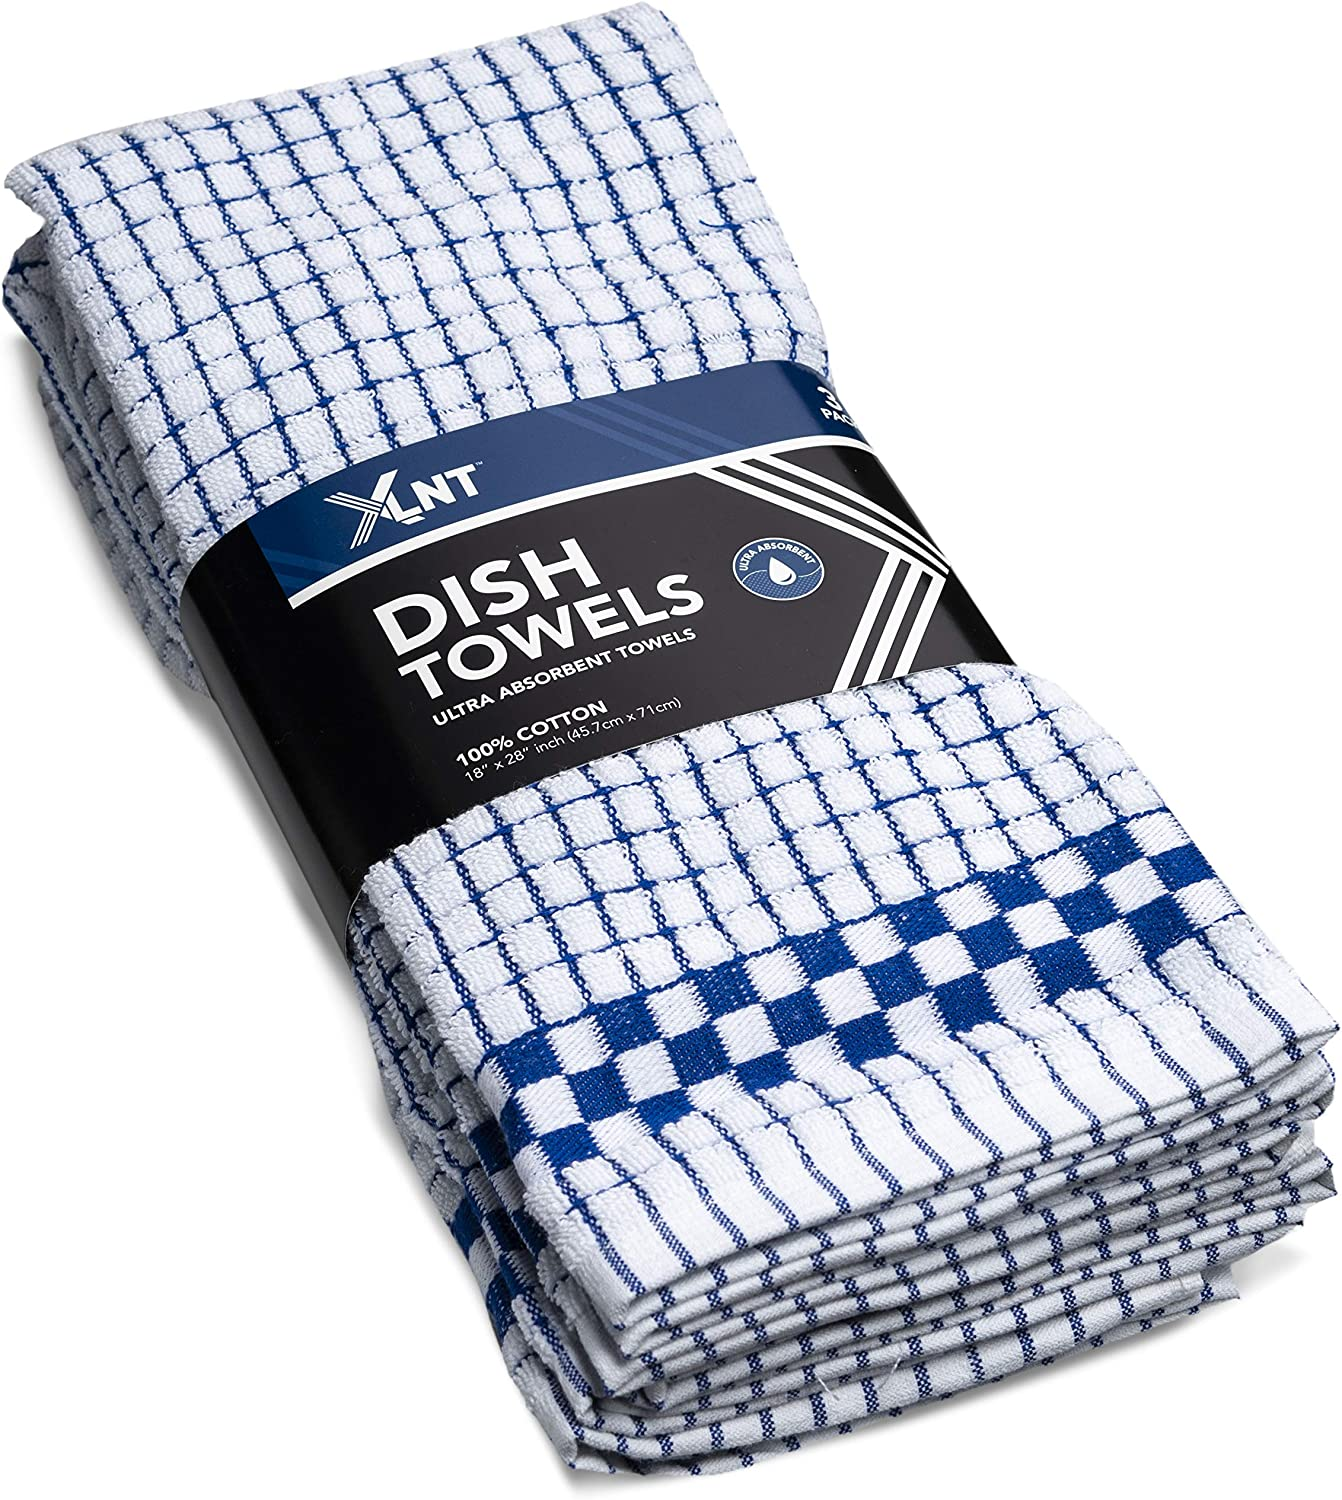 XLNT Blue Kitchen Towels (3 Pack) - 100% Cotton Dish Towels | Durable, Ultra Absorbent Dishcloths Sets of Hand Towels/Tea Towels for Everyday Scrubbing | Quick Drying Kitchen Washcloths Towel Set